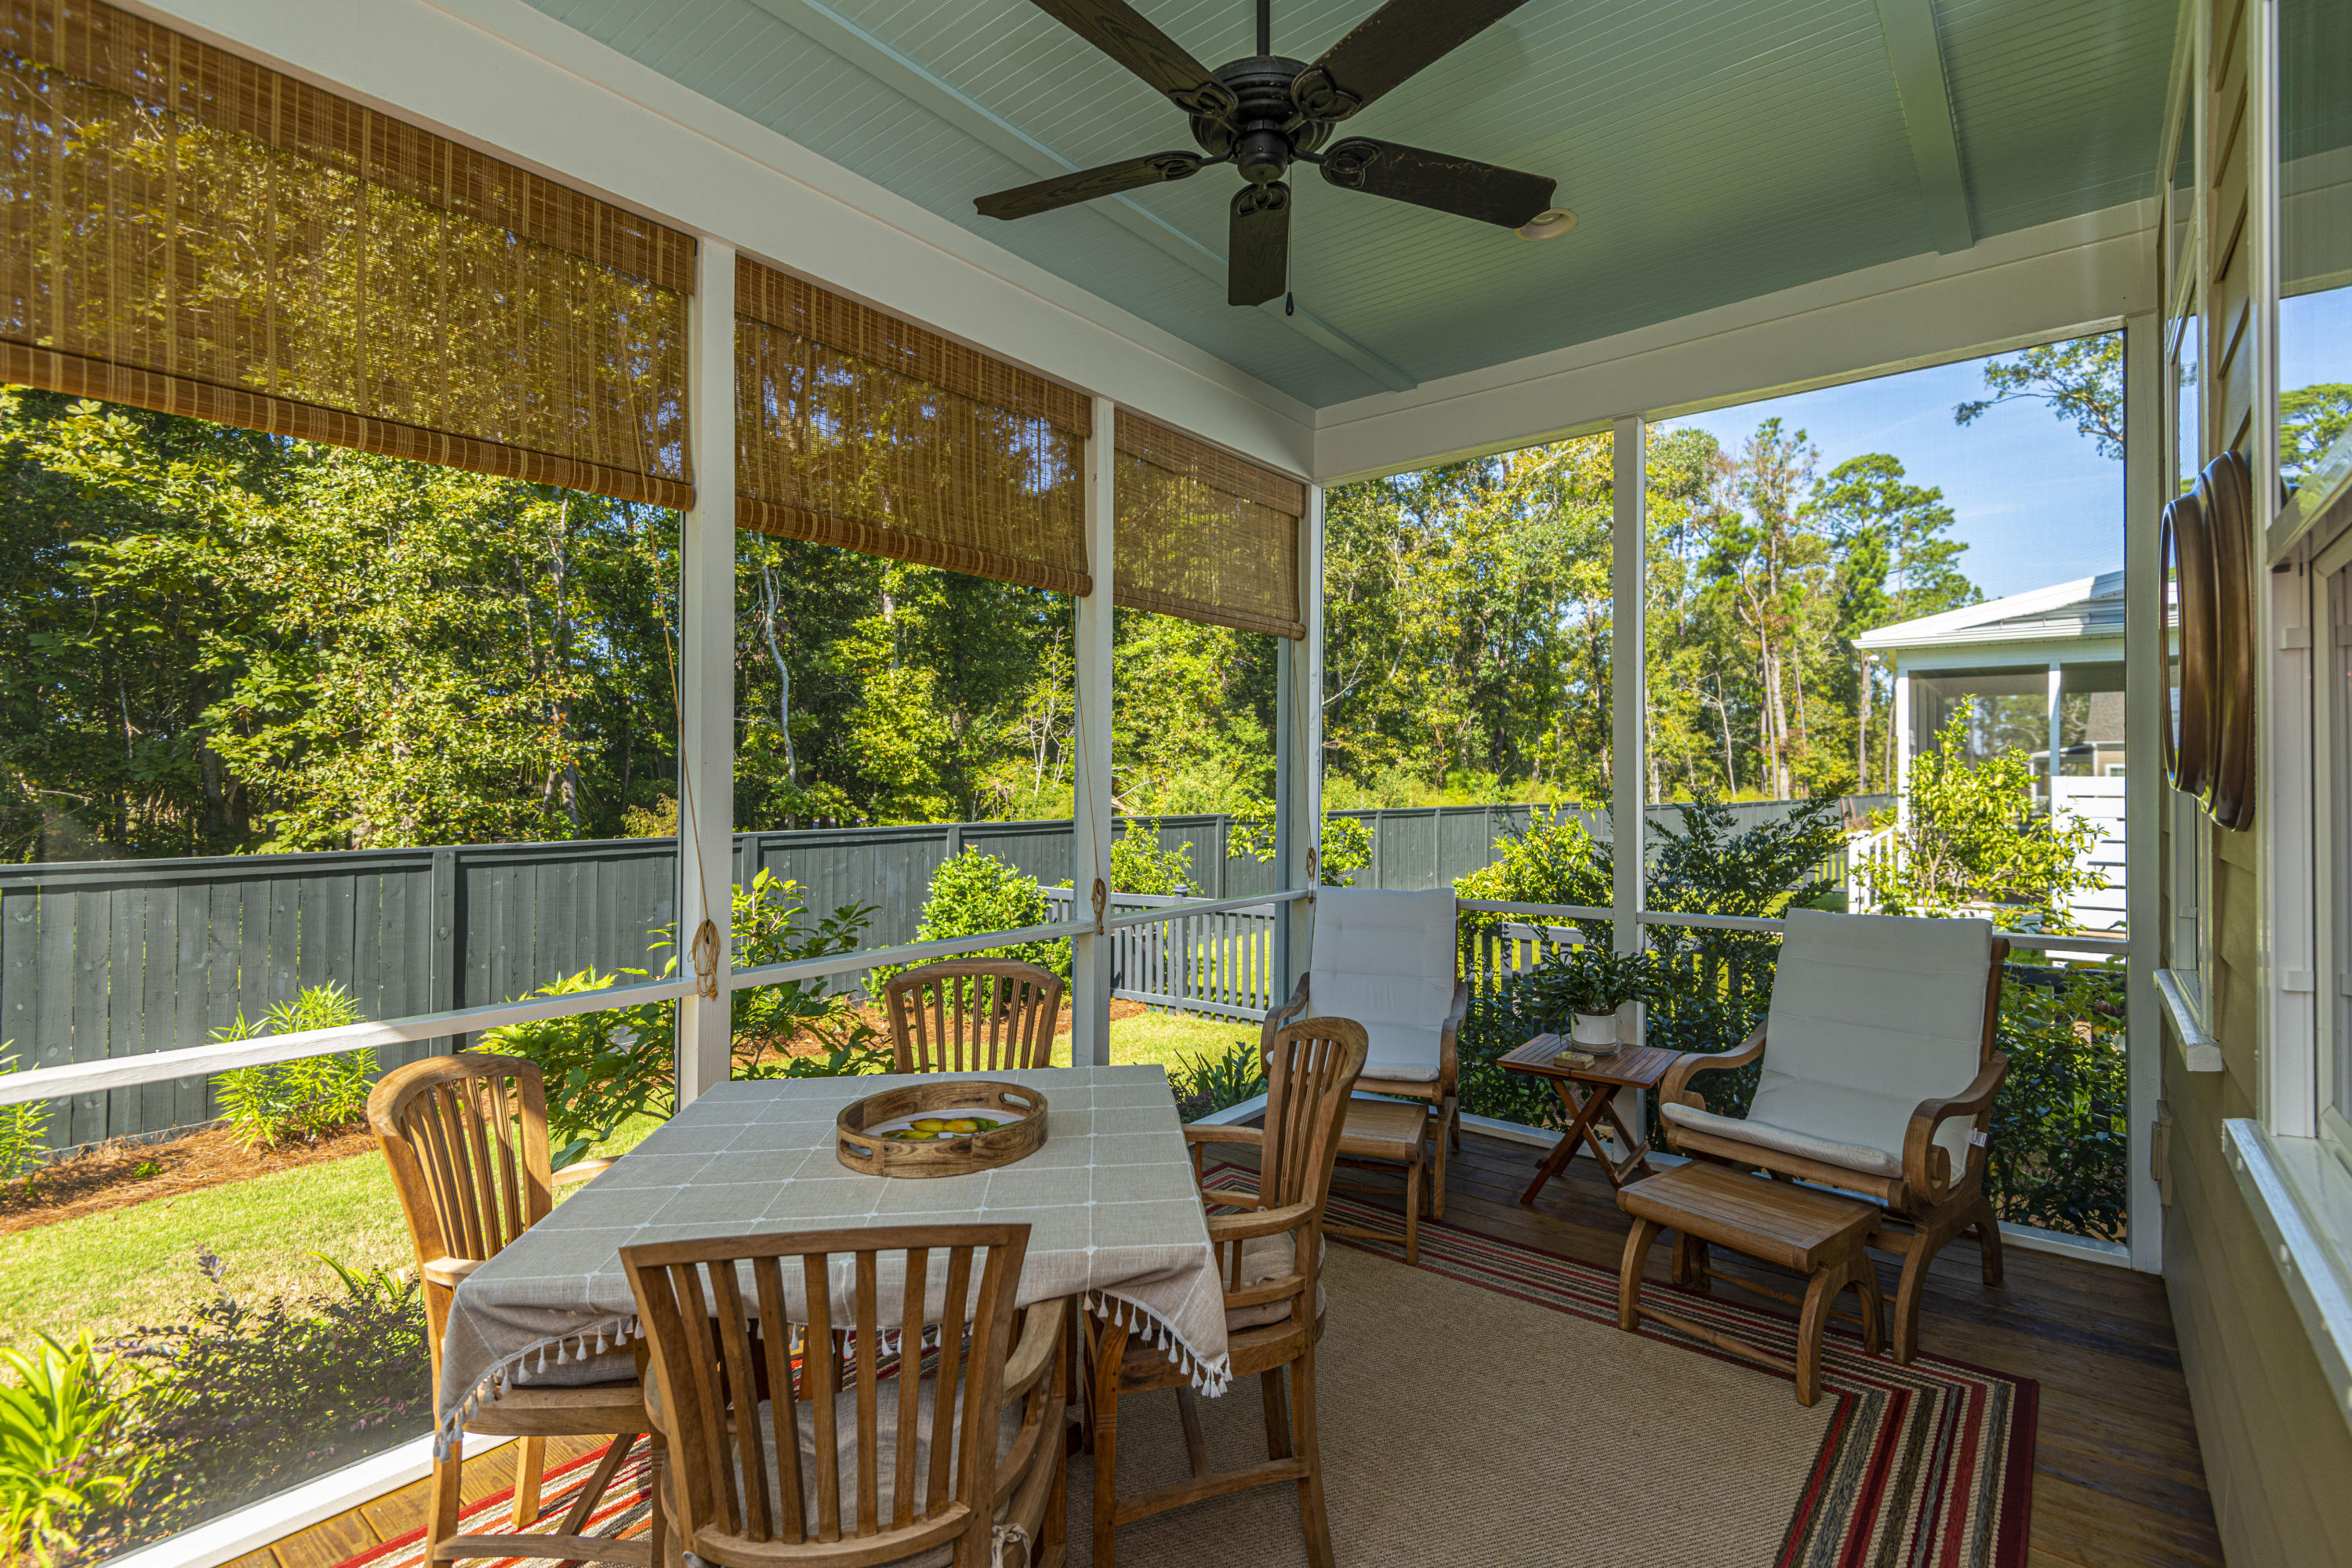 Dunes West Homes For Sale - 2870 Clearwater, Mount Pleasant, SC - 8